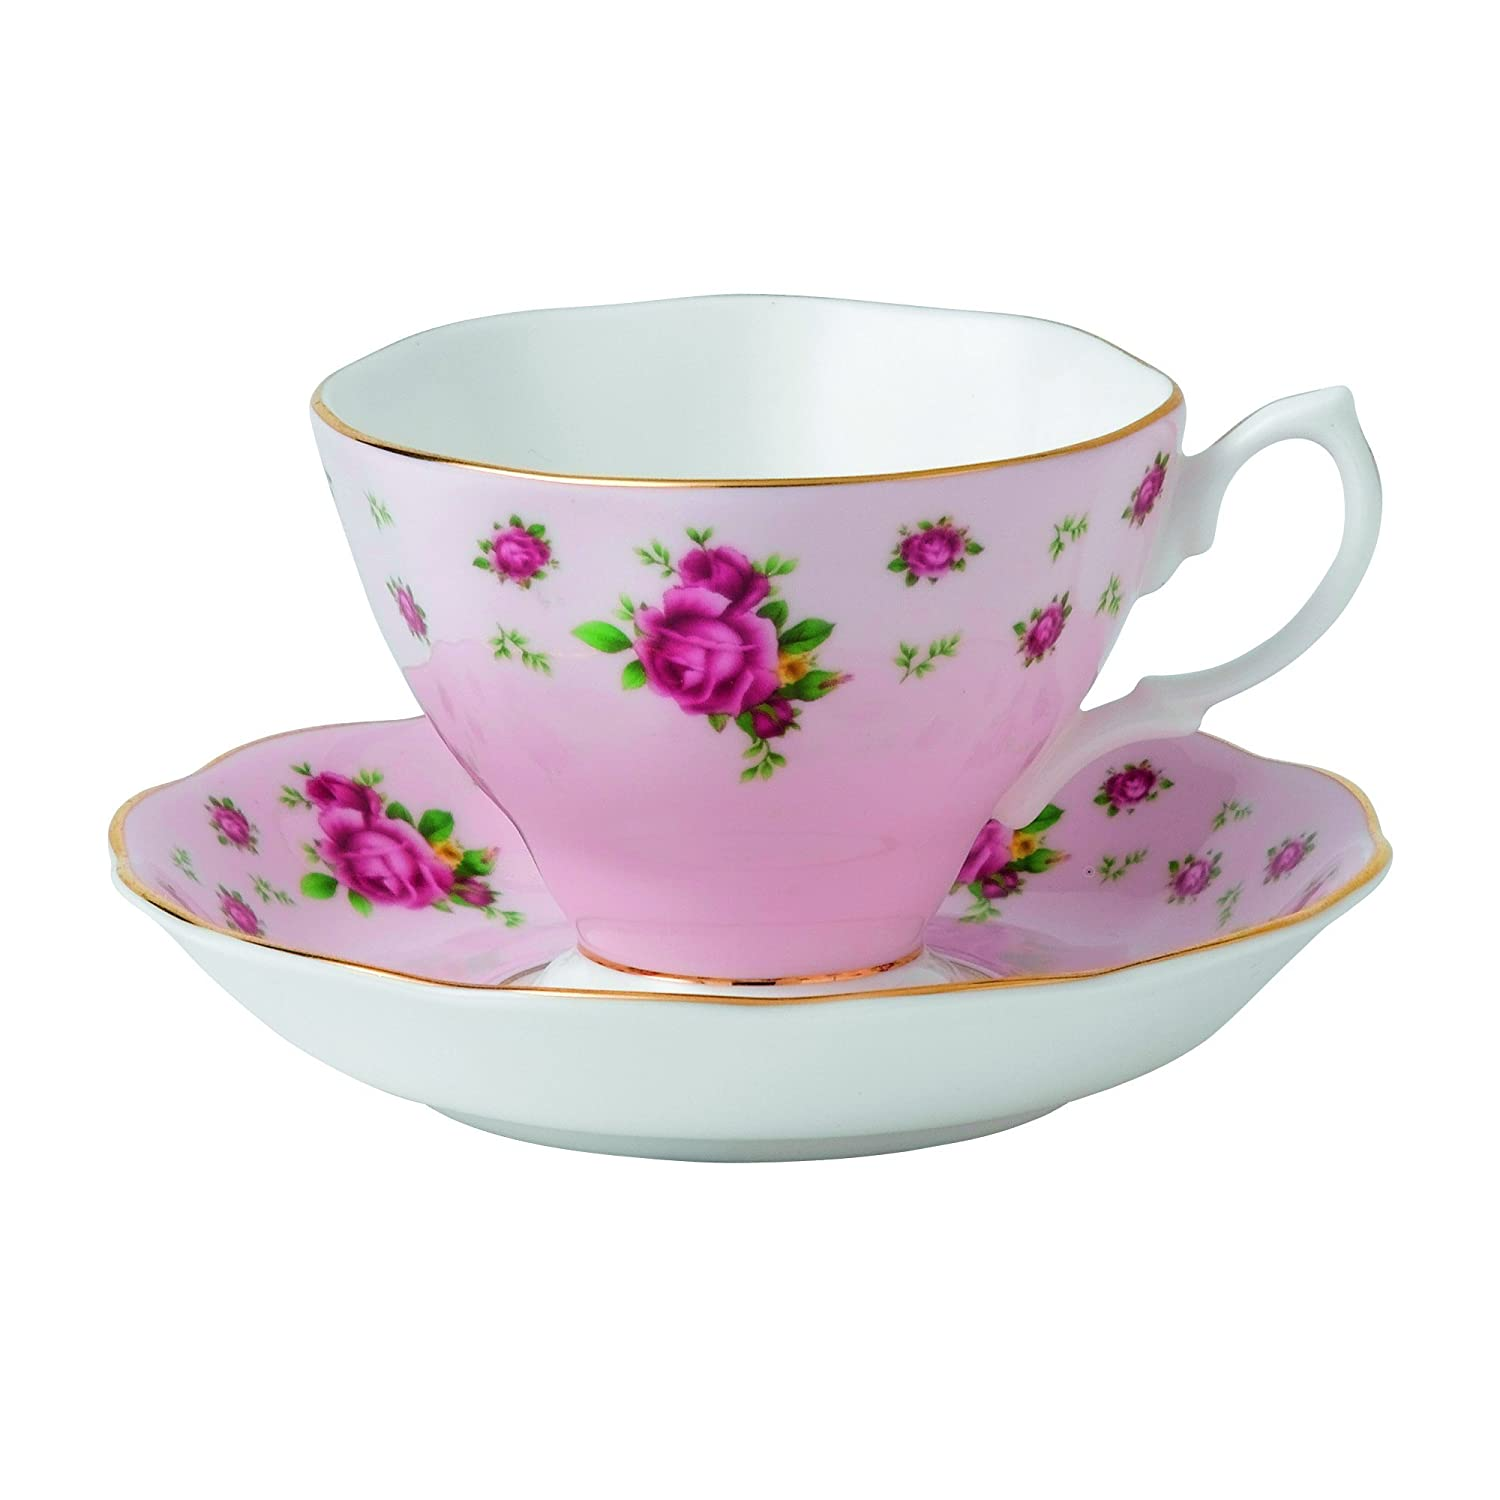 teacup  saucer amazoncouk kitchen  home -